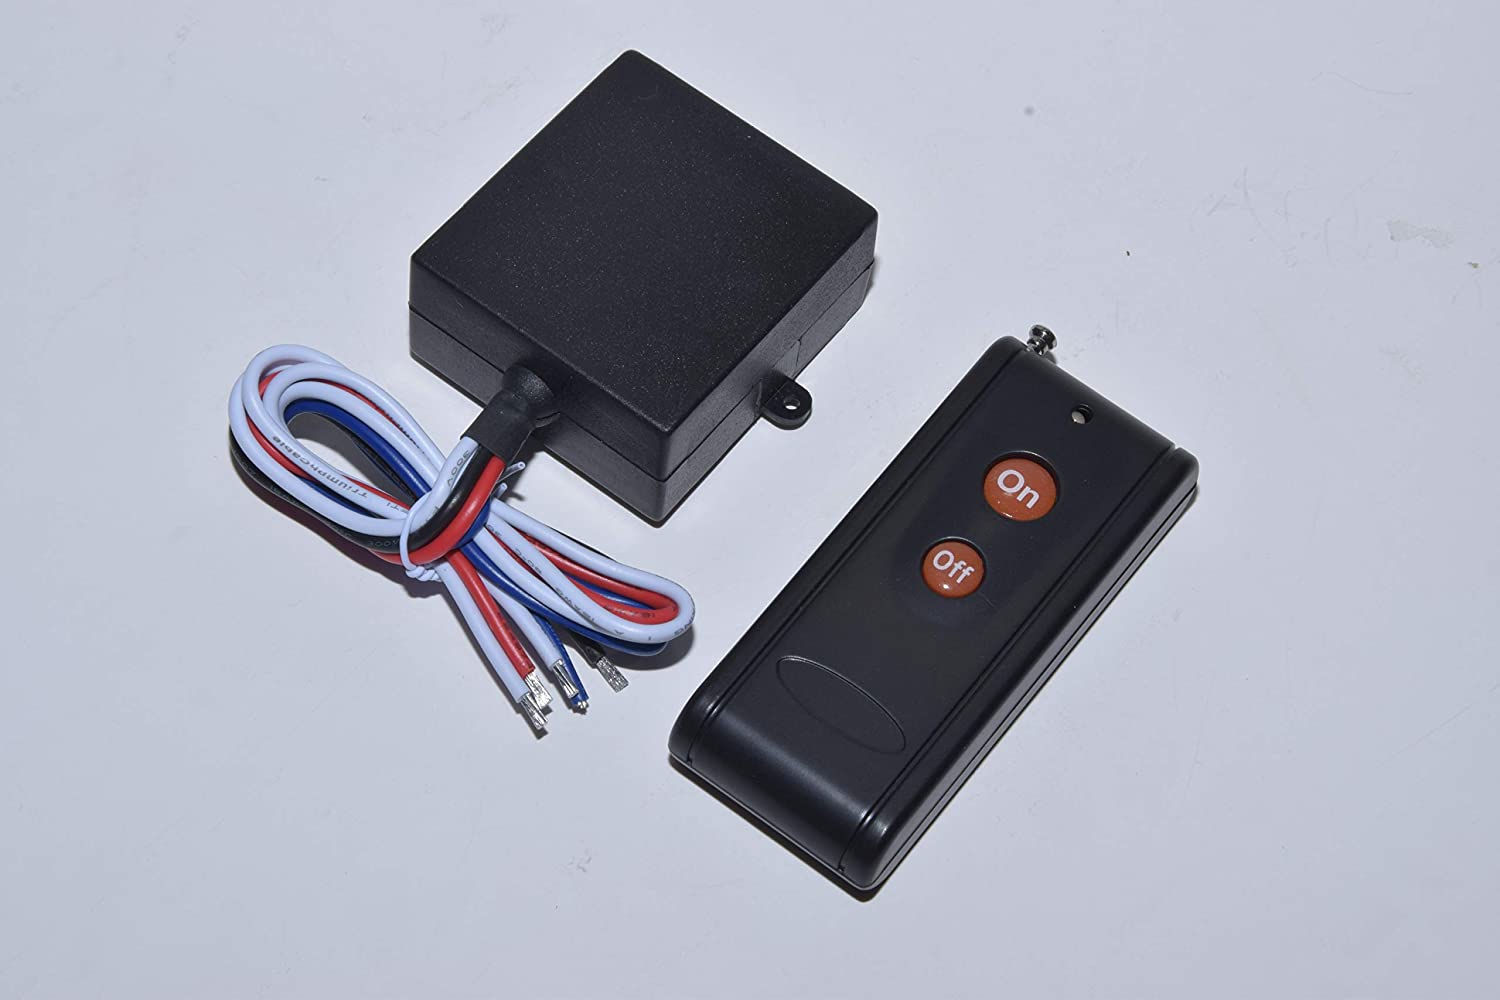 MSD 12V DC dry contact on off relay switch with long range remote control